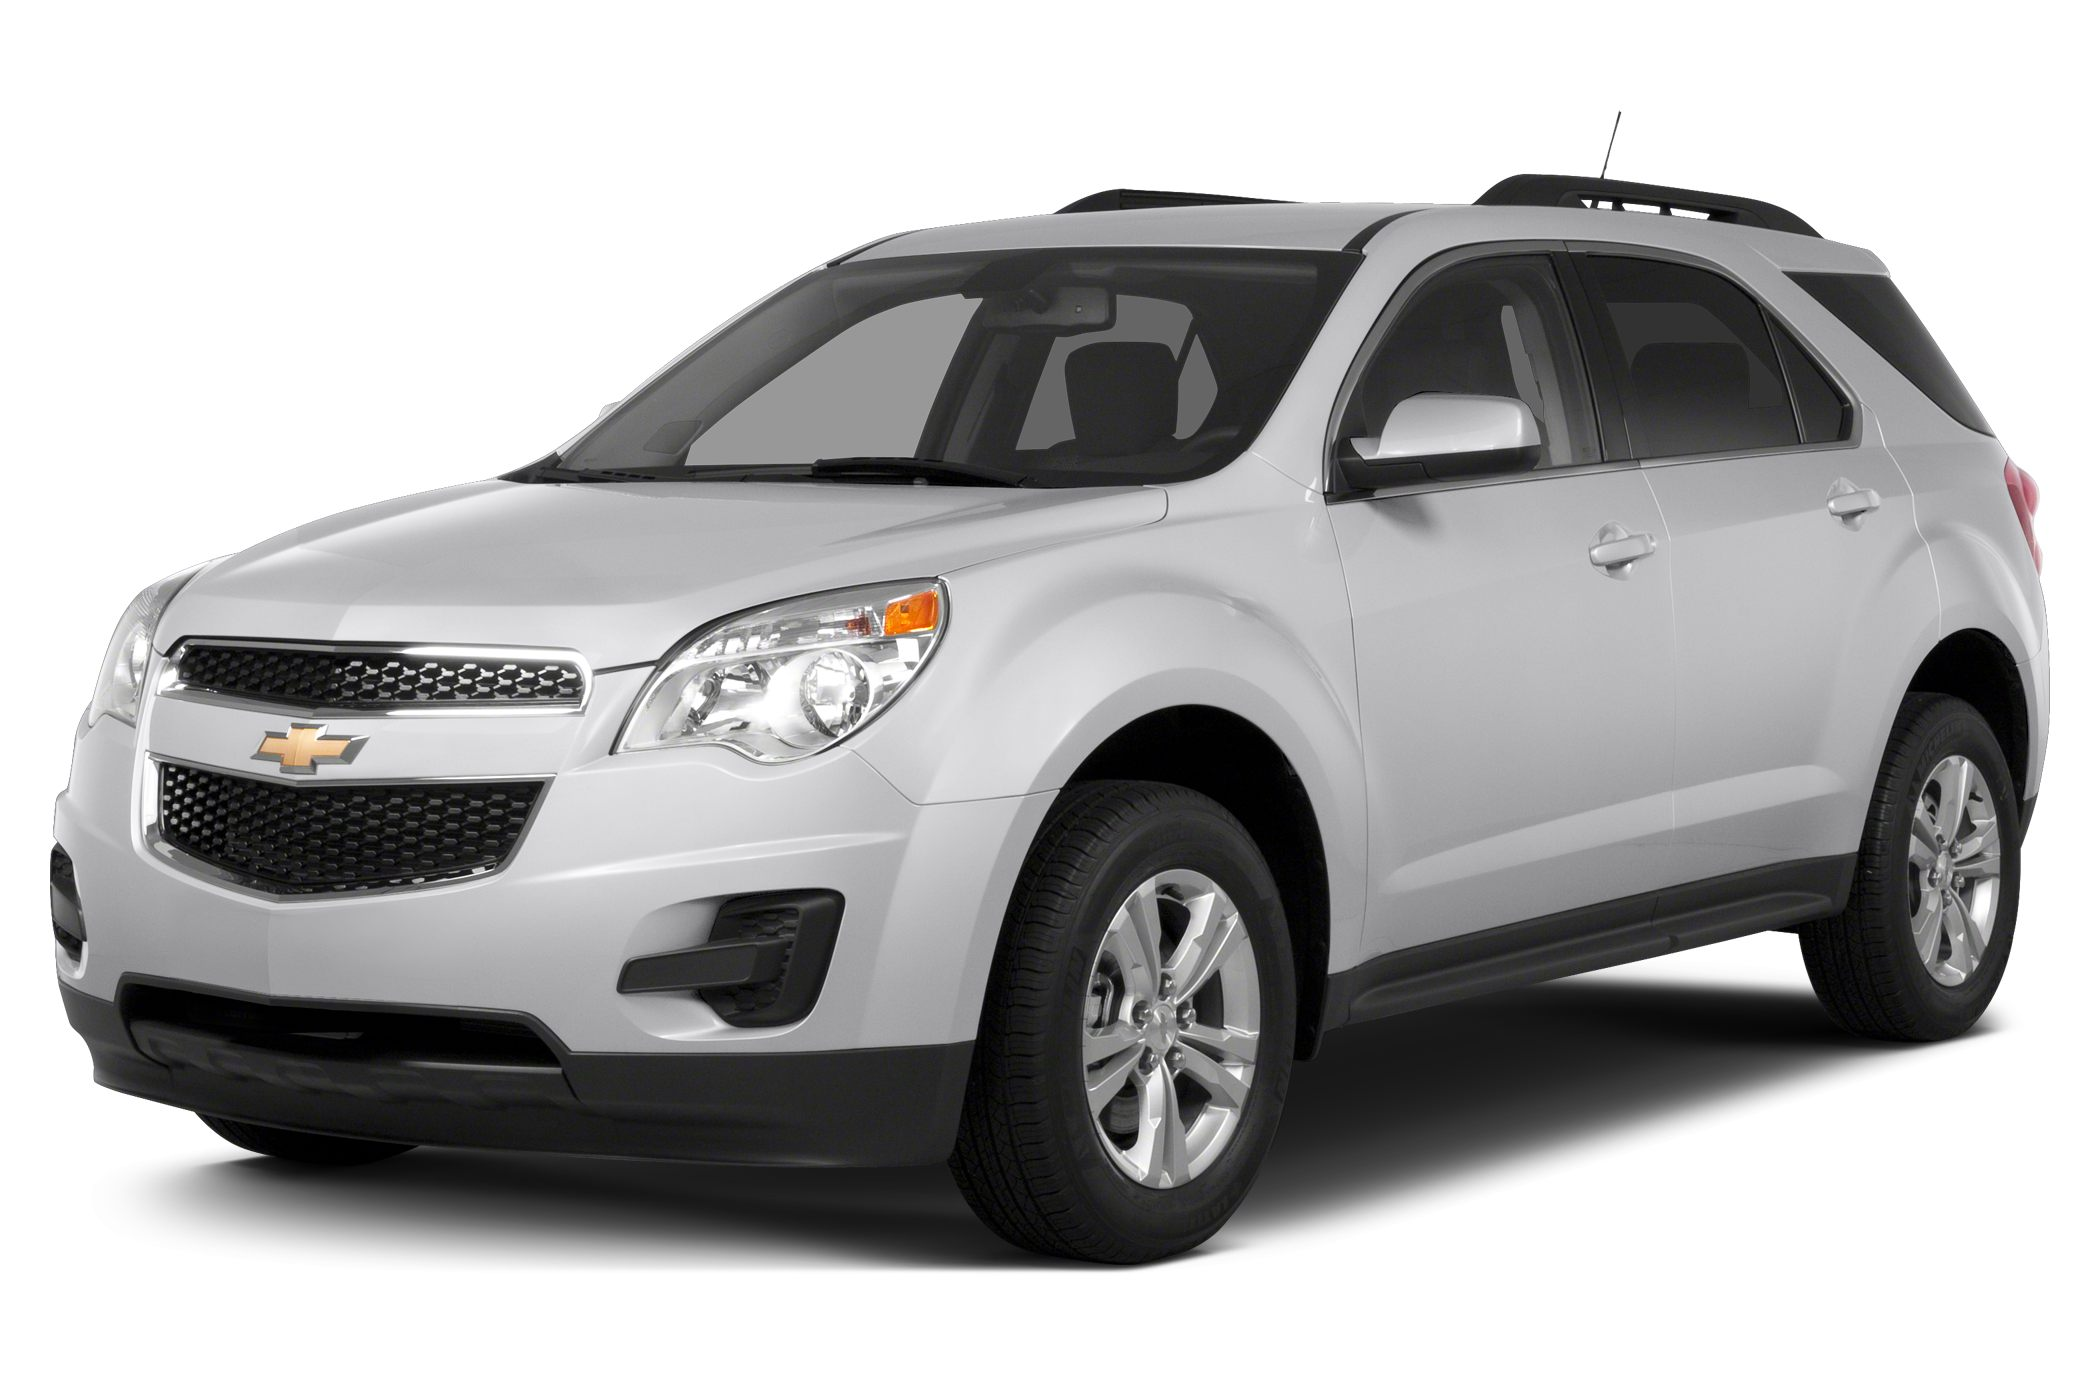 2015 Chevrolet Equinox 1LT SUV for sale in Mentor for $28,665 with 0 miles.